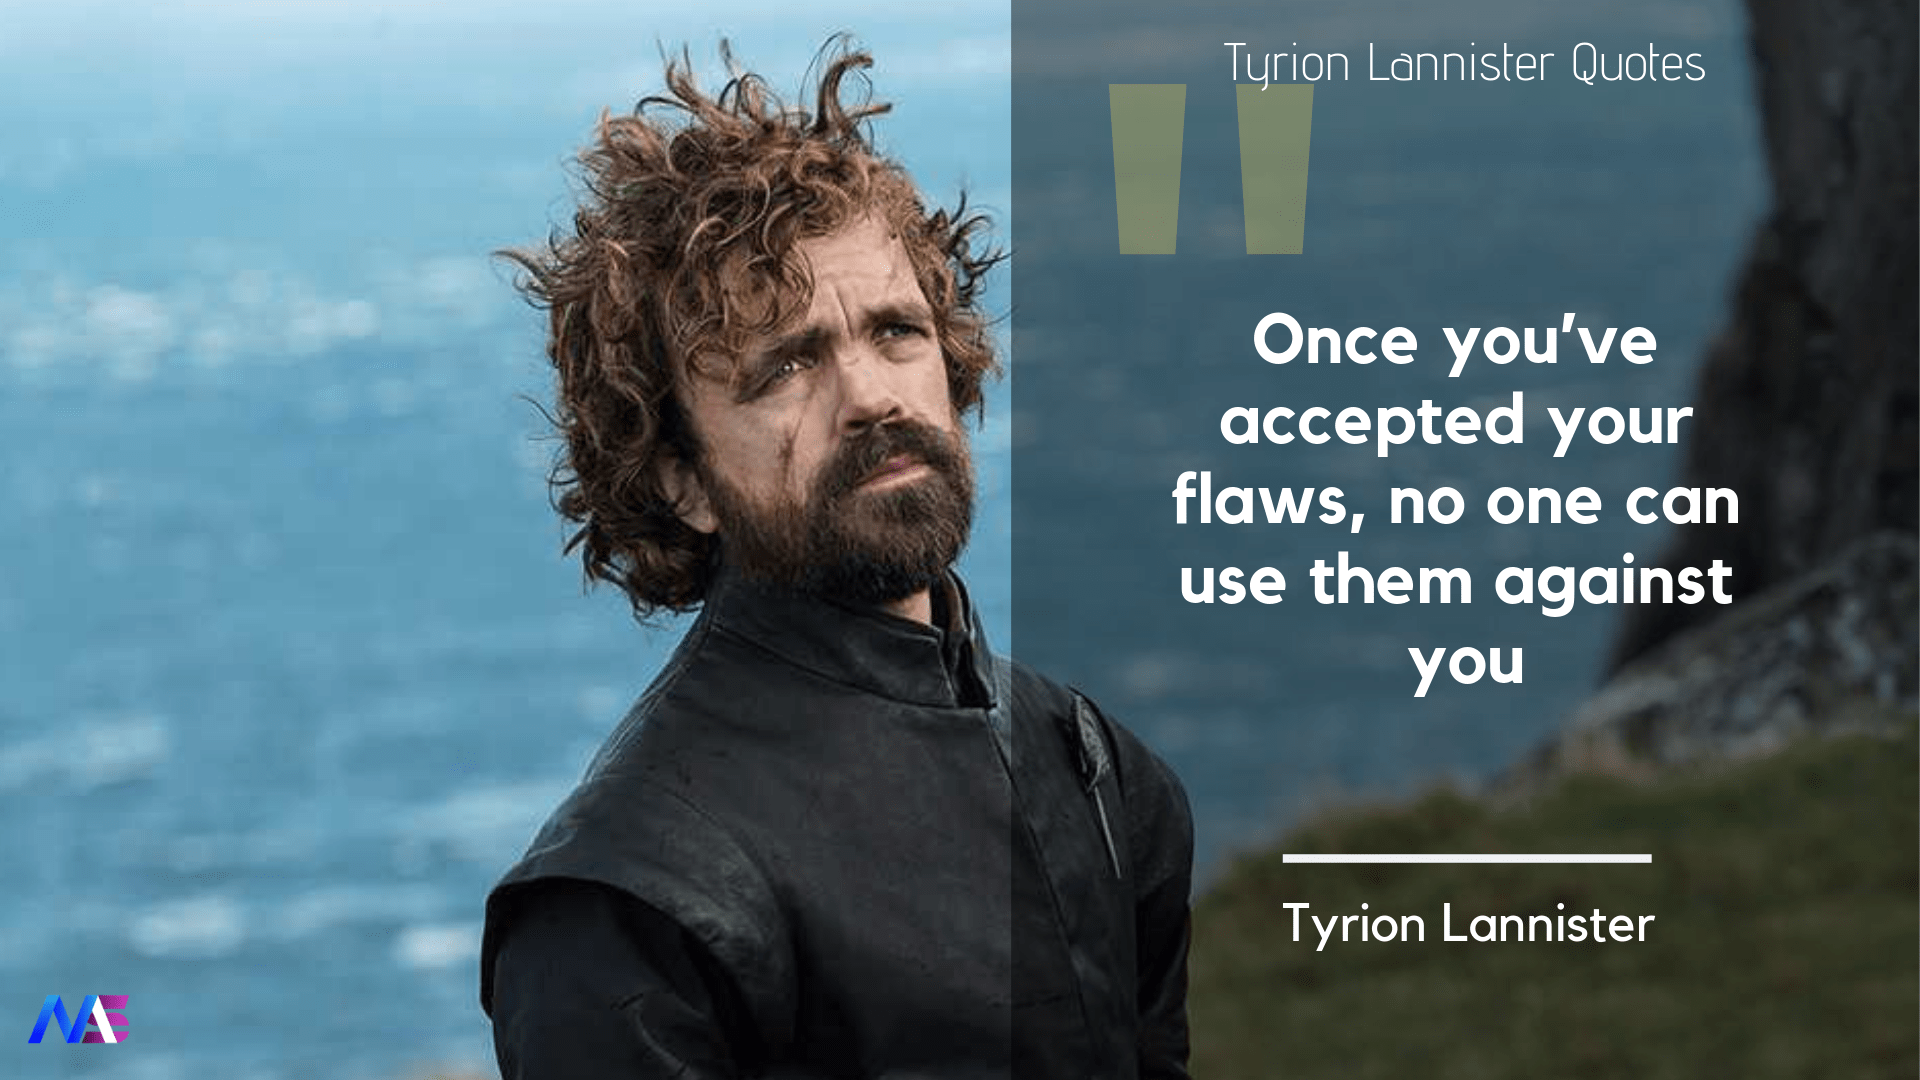 18 Amazing Tyrion Lannister Quotes from Game of Thrones - Moodswag